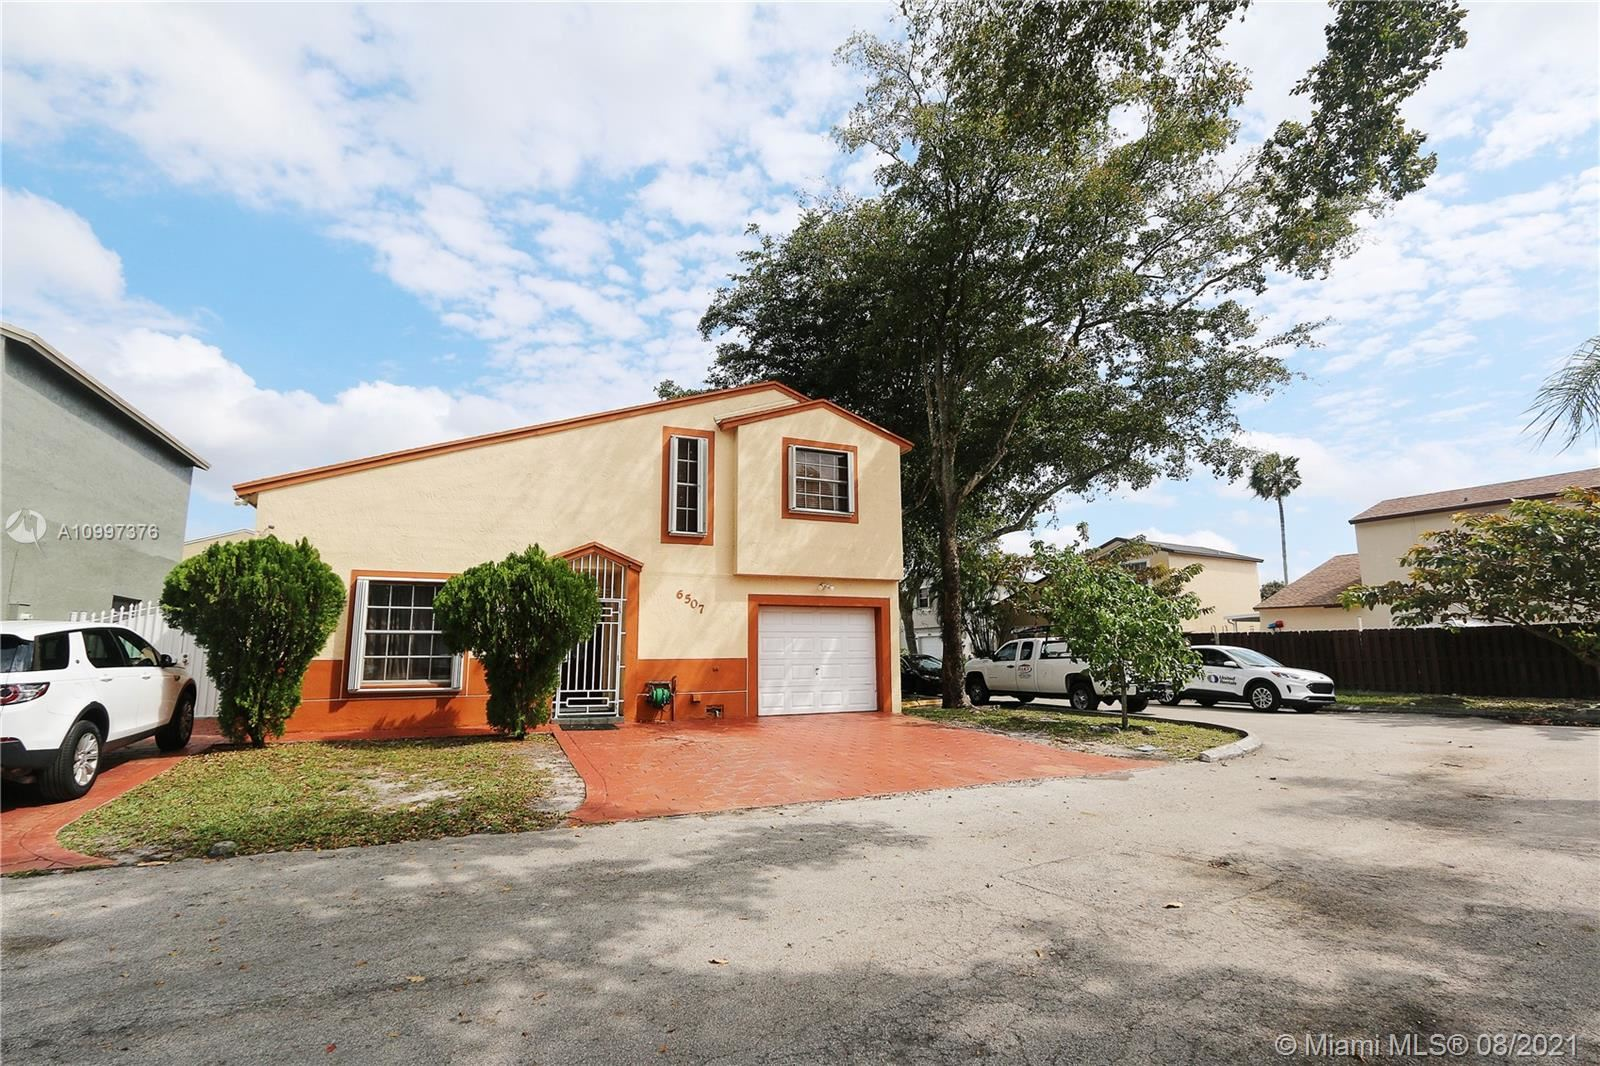 6507 NW 197th Ln, Hialeah, FL 33015 - #: A10997376